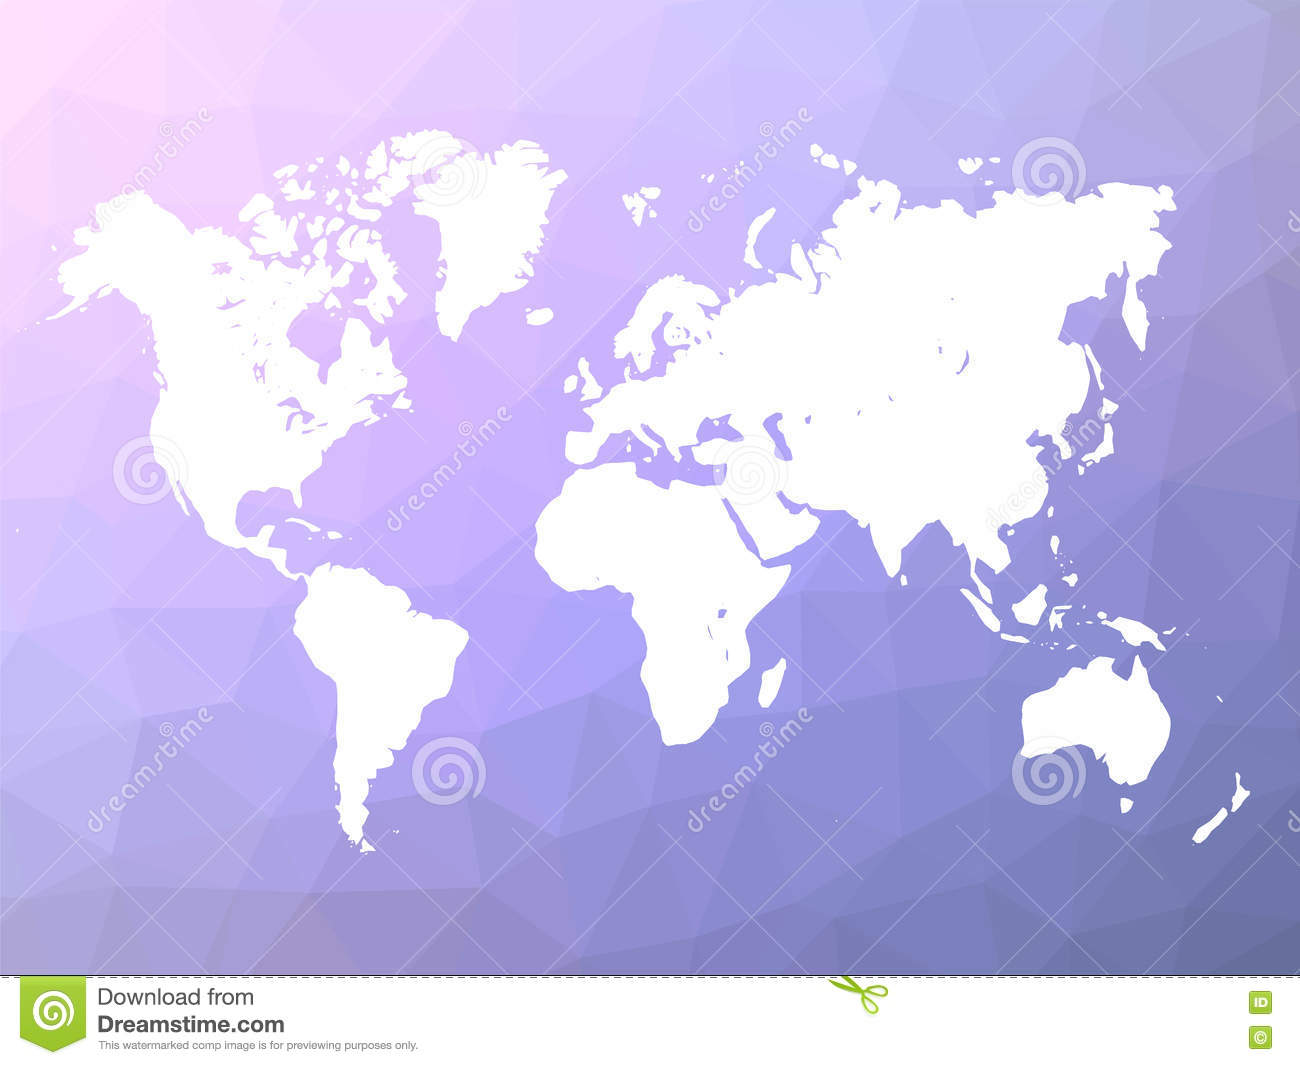 World map silhouette on blue violet low poly background stock world map silhouette on blue violet low poly background gumiabroncs